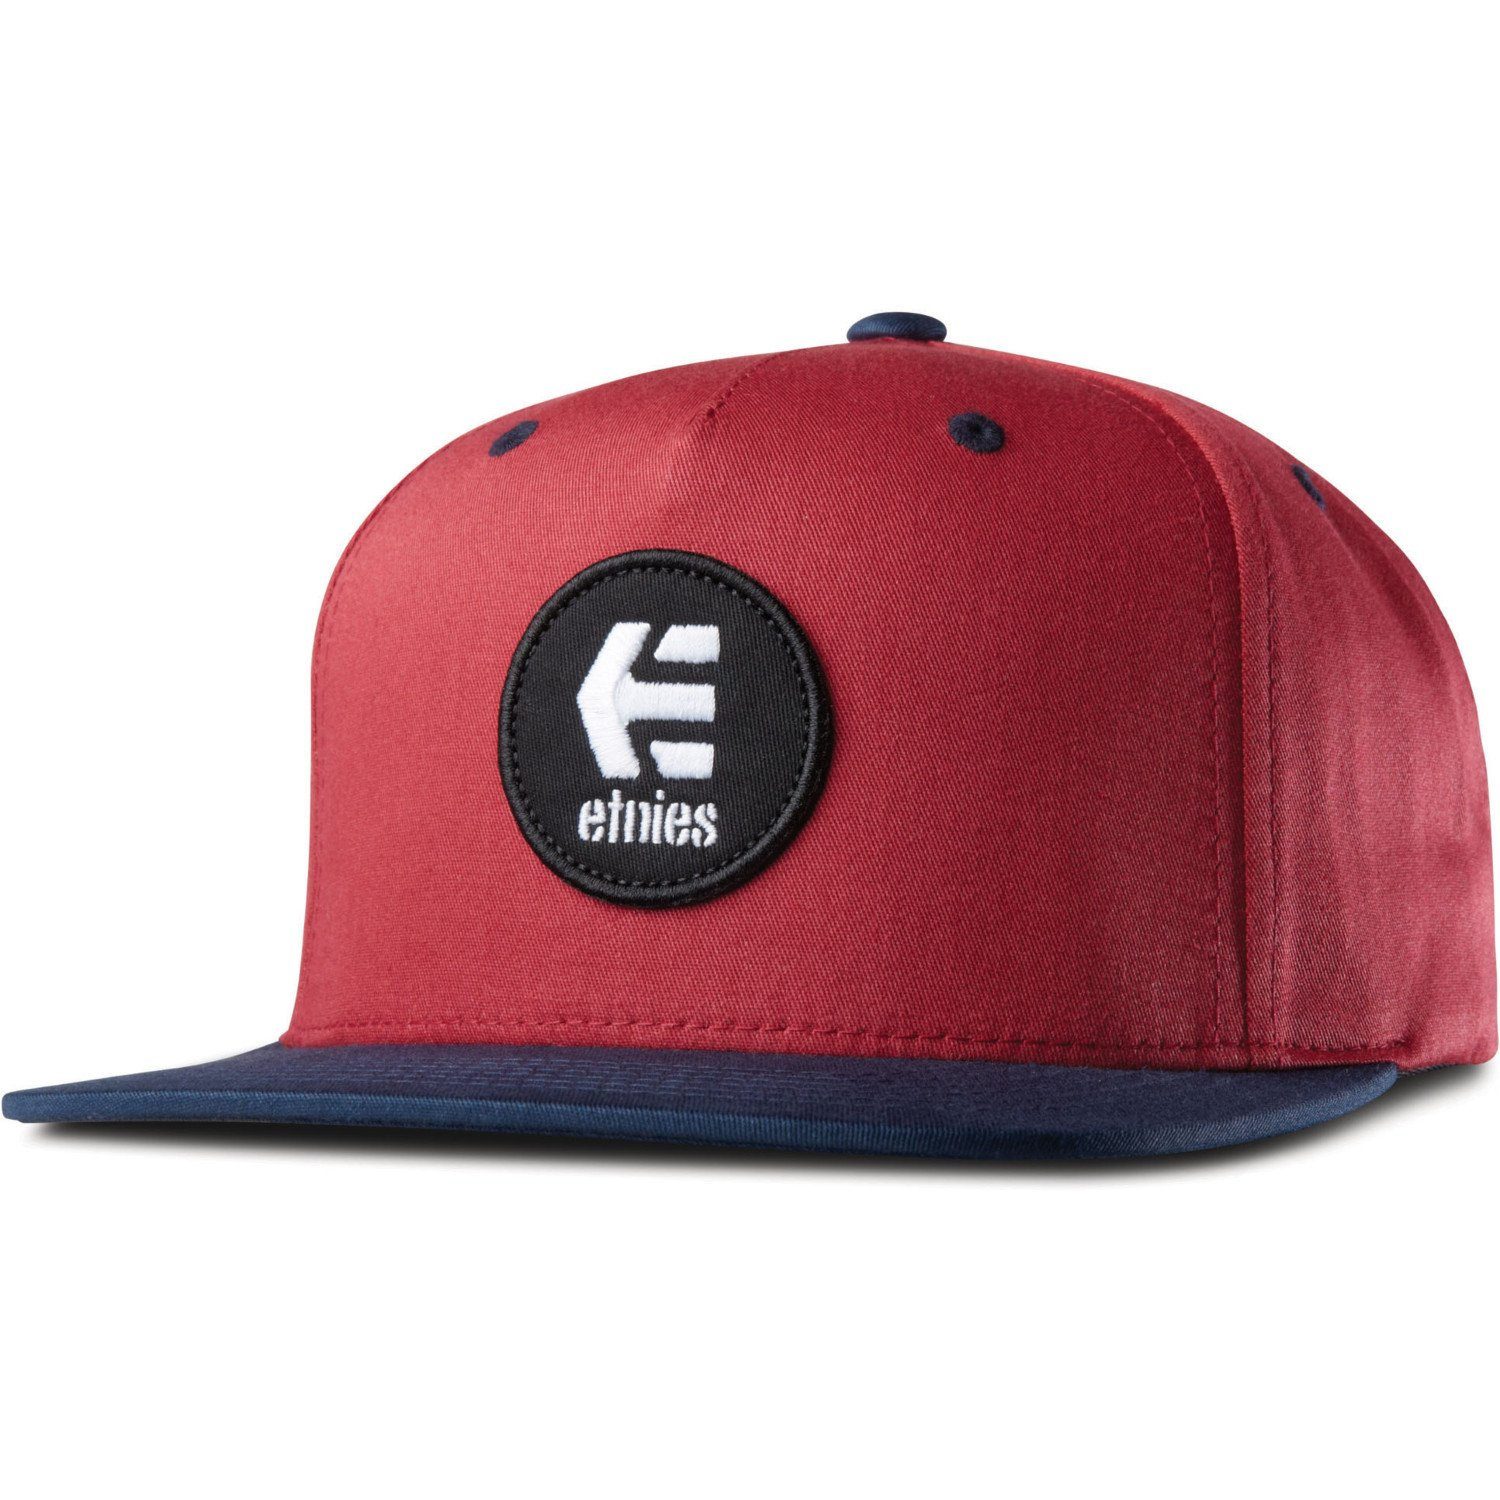 Etnies-Rook Snapback Hat, Color: Burgundy, Size: One Size: Amazon ...